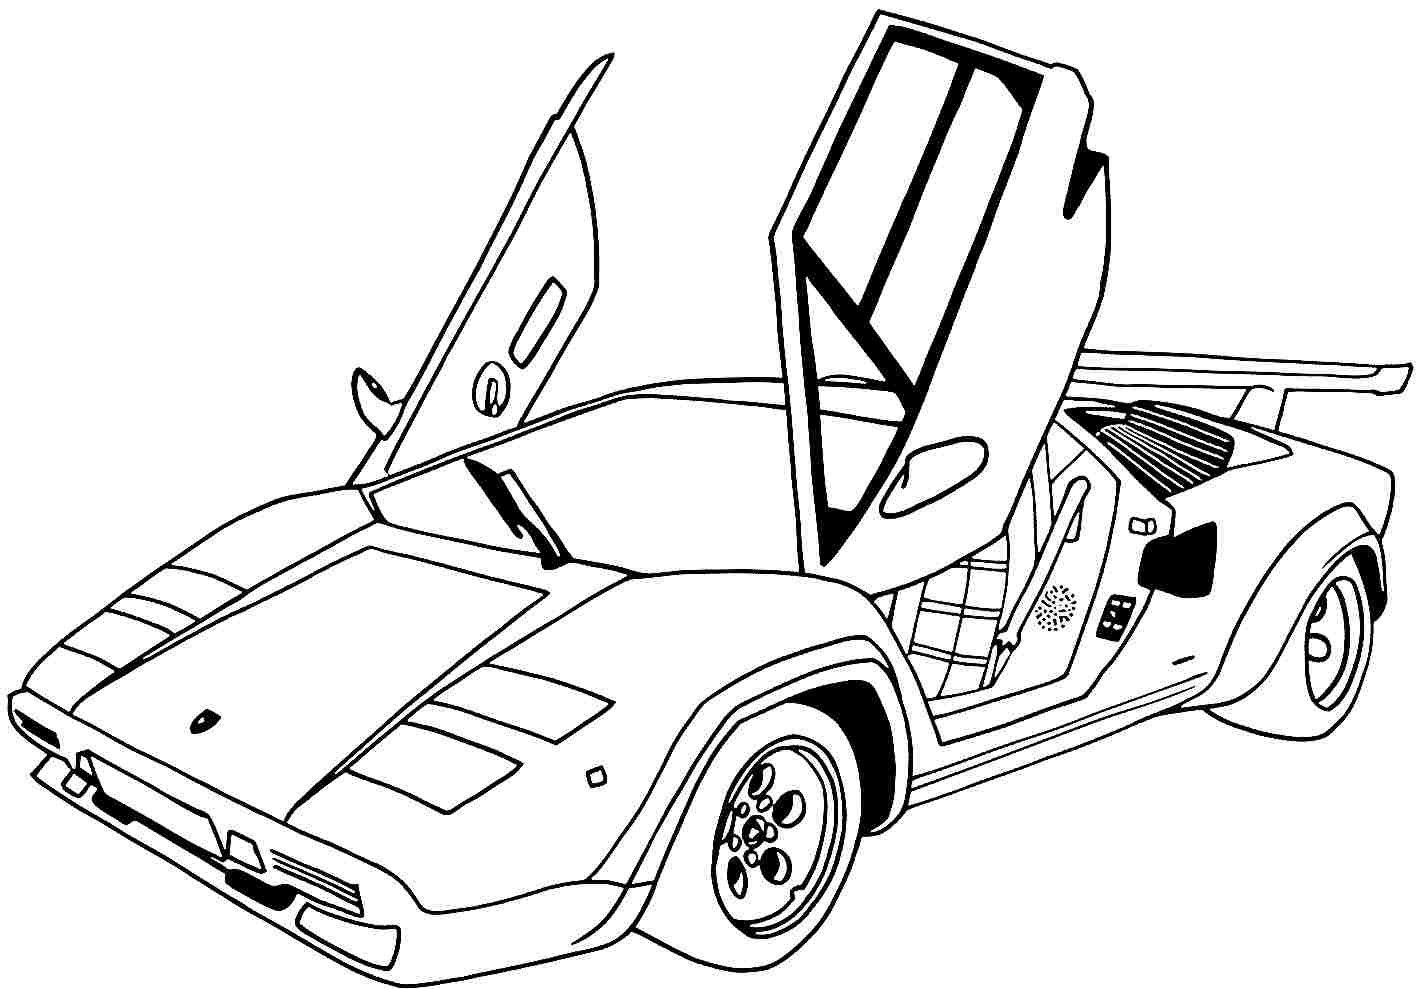 printable pictures of cars to color free printable race car coloring pages for kids to cars pictures printable color of